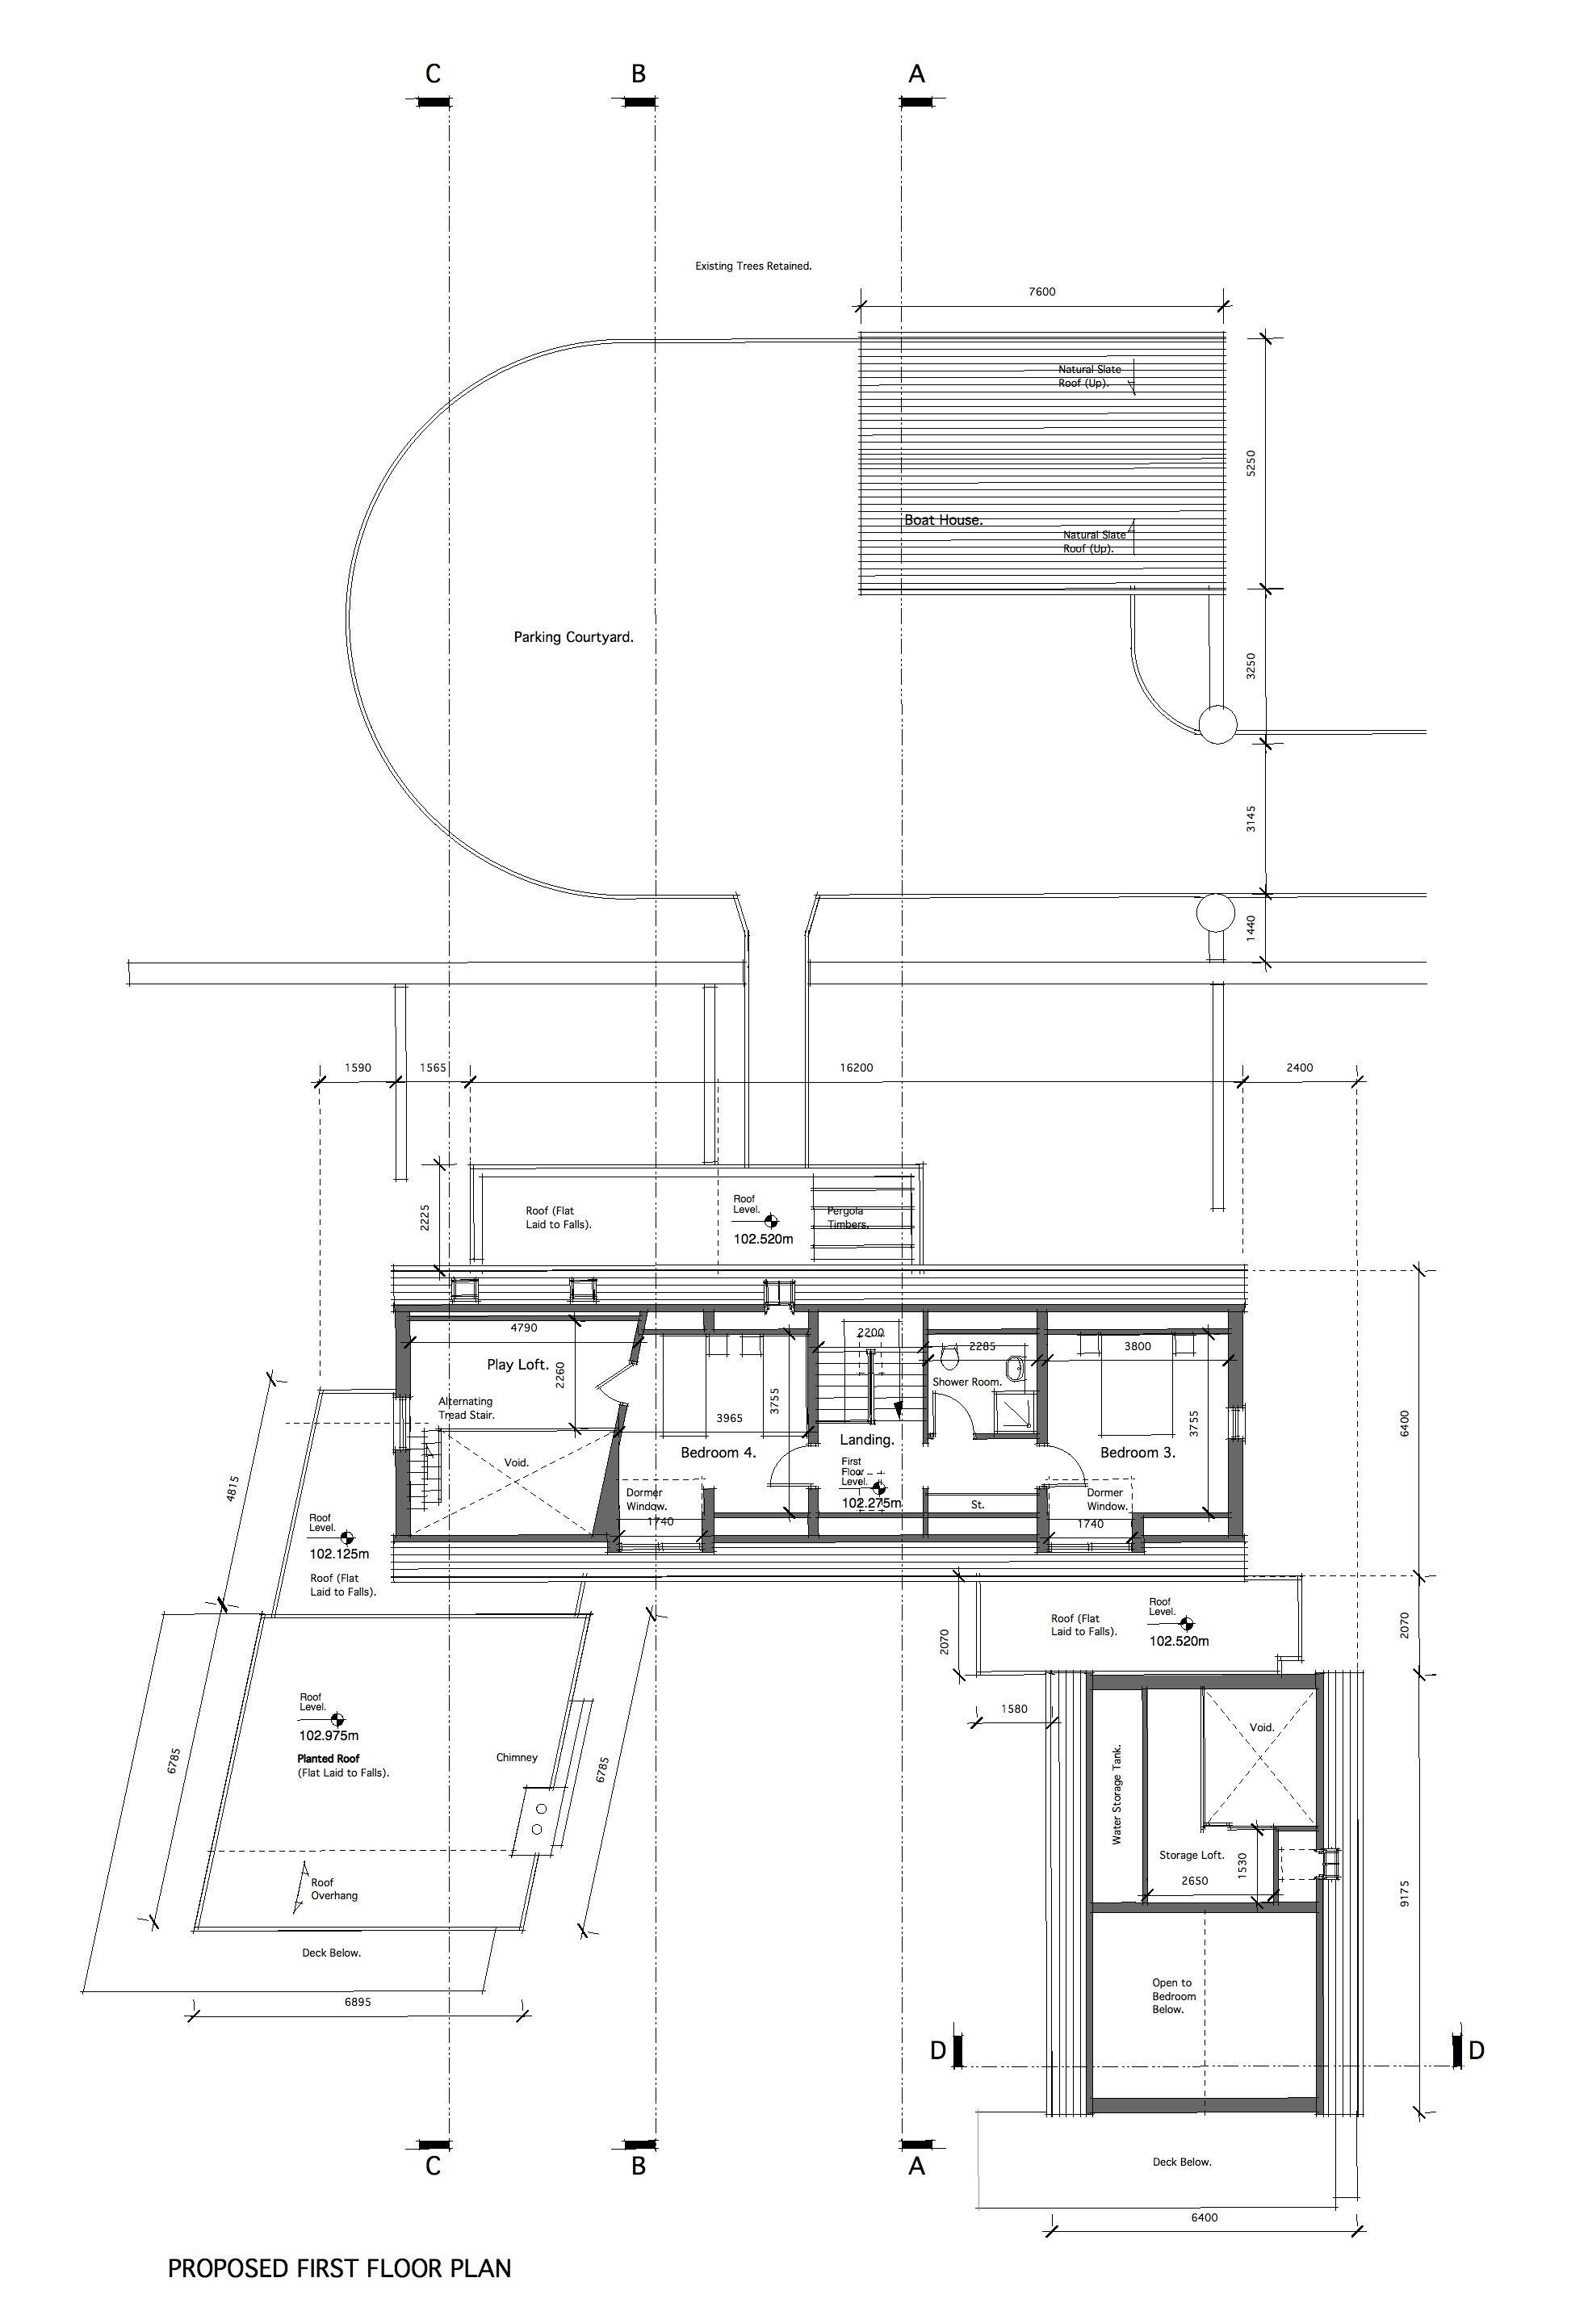 First Floor Plan - PlantedRoof Over the Living Room.